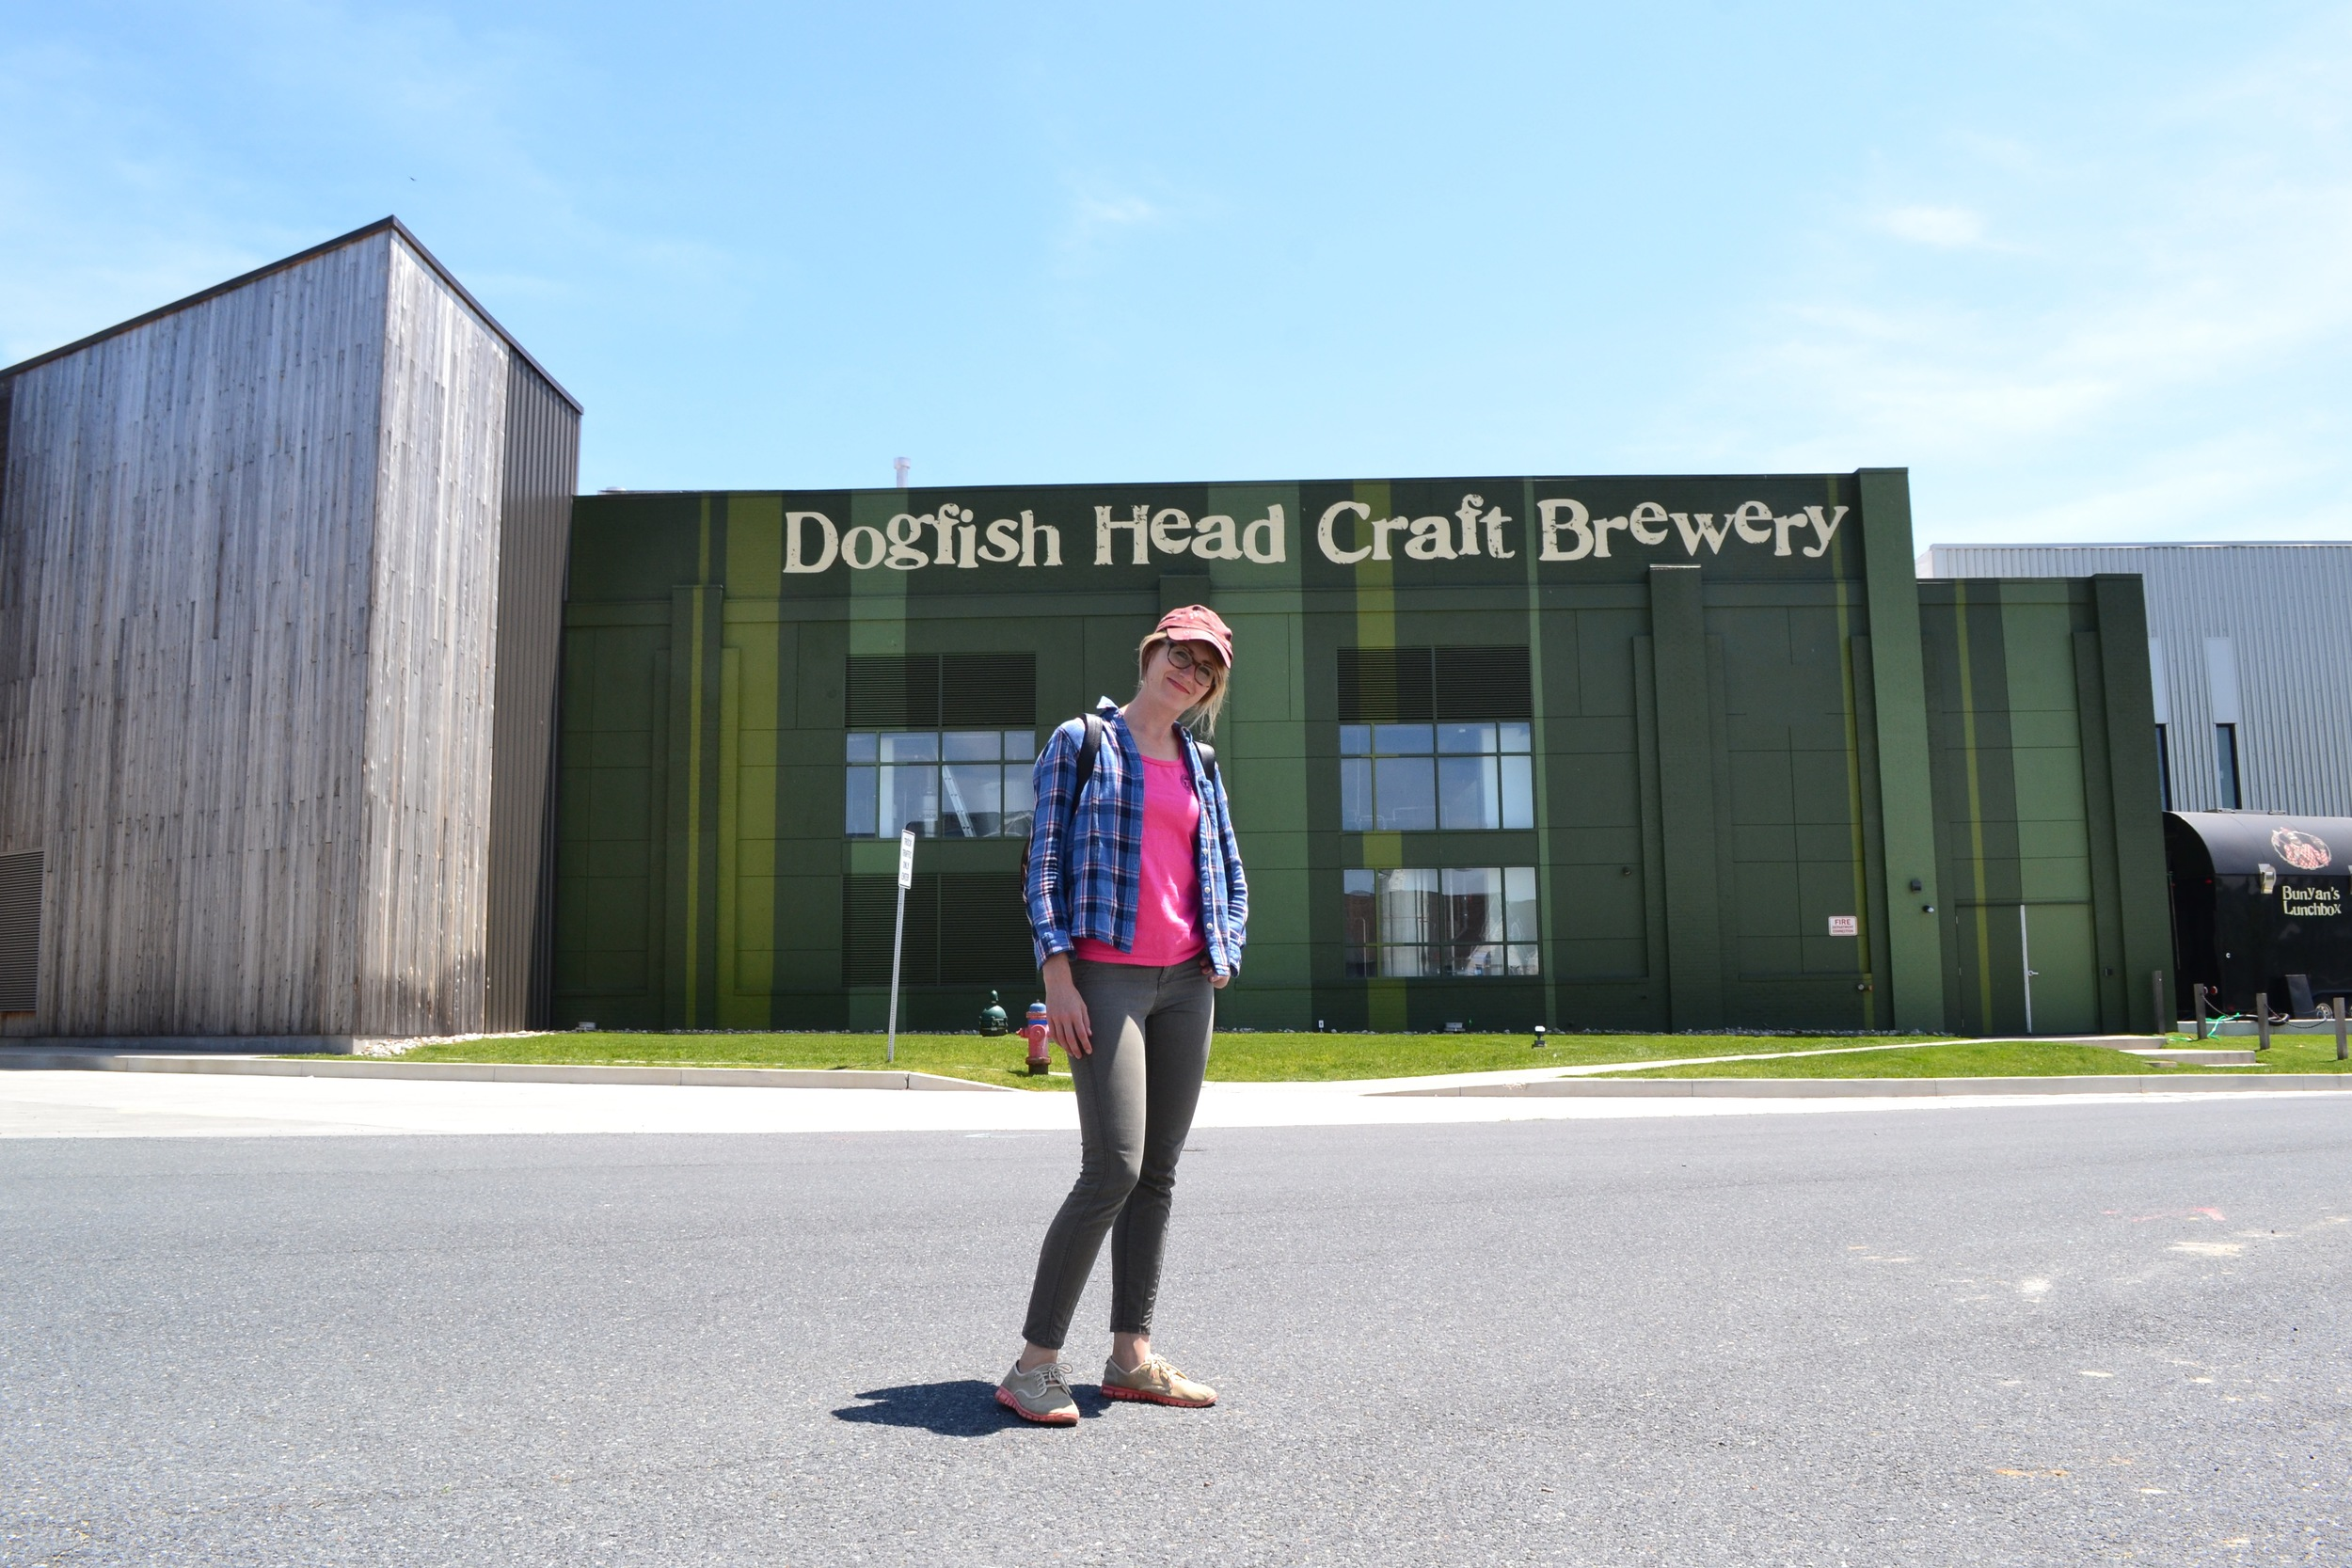 Outside Dogfish Head Brewery HQ in Milton. We had a little FOMO here already.